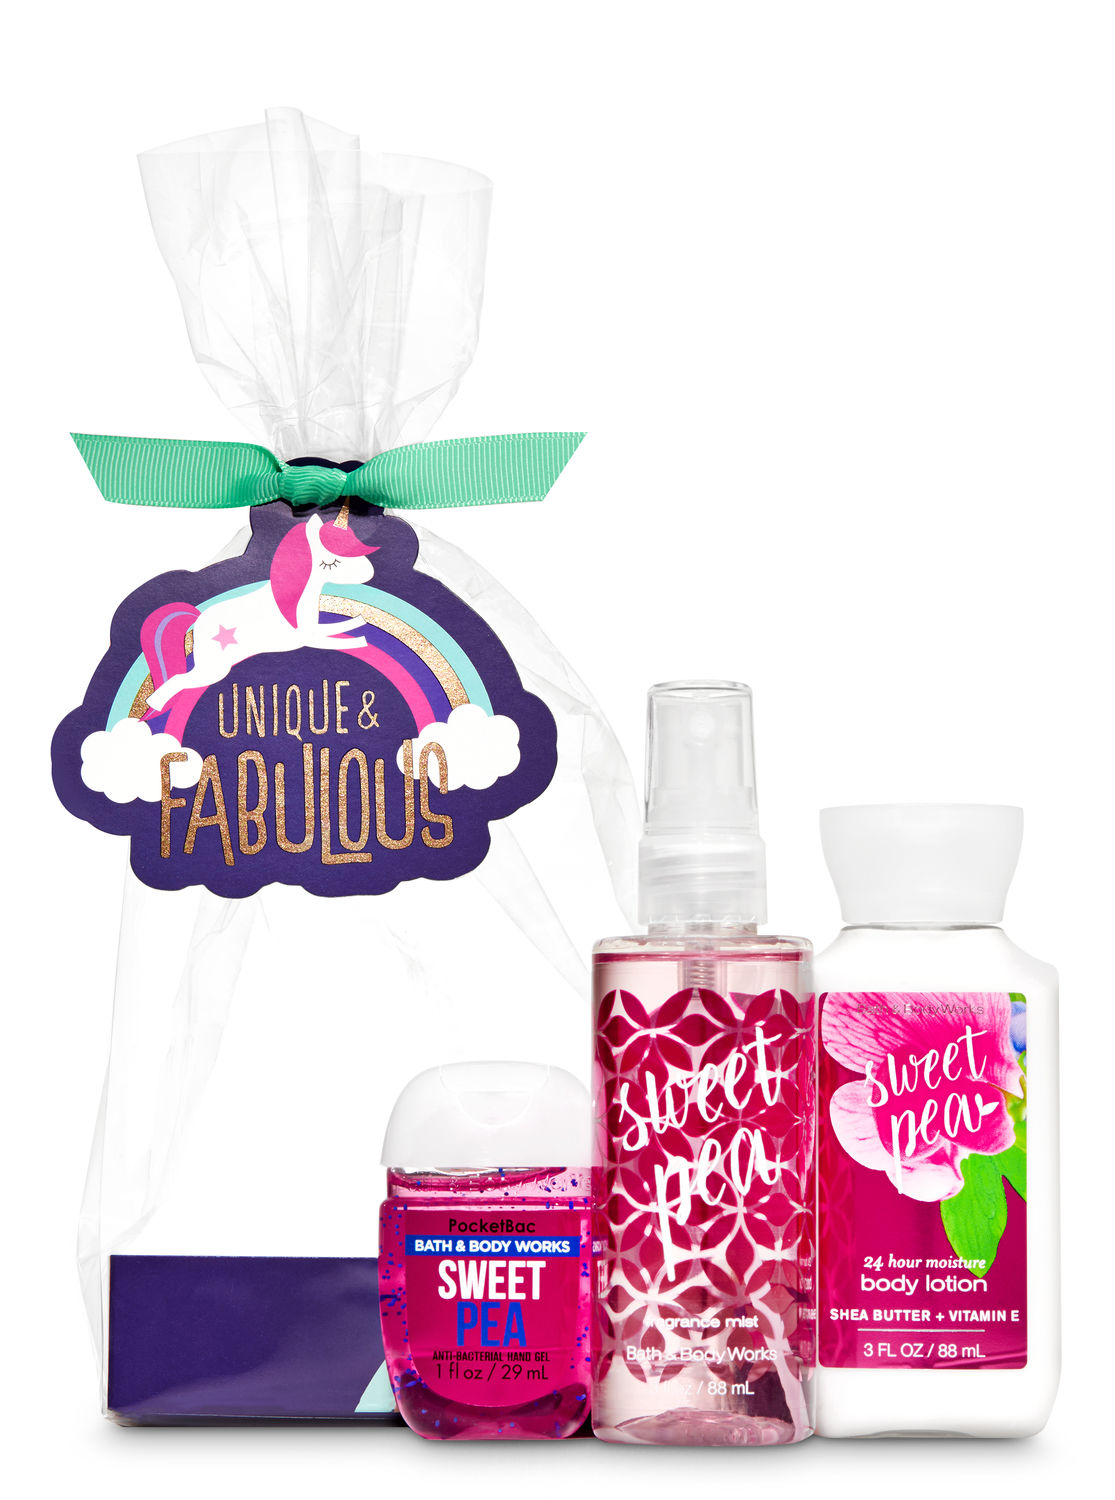 Sweet Pea Unique Fabulous Mini Gift Set By Bath Body Works